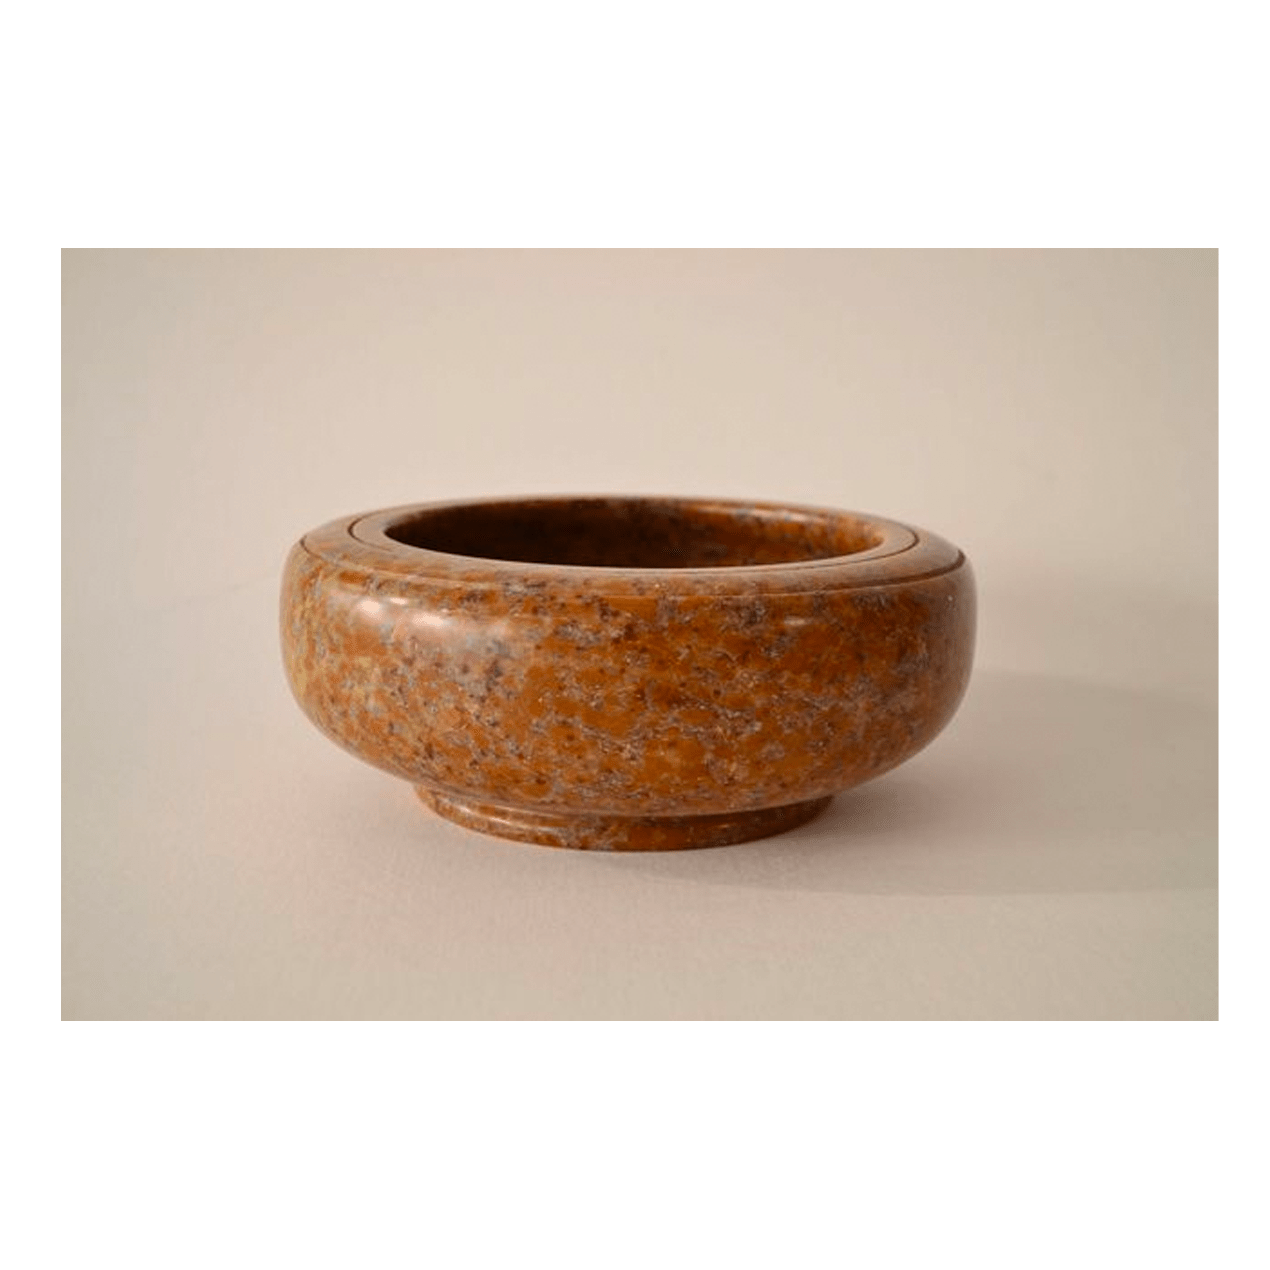 Orange Bowl 9 x 3 ½ Pyrophyllite $400 (Sculpture)